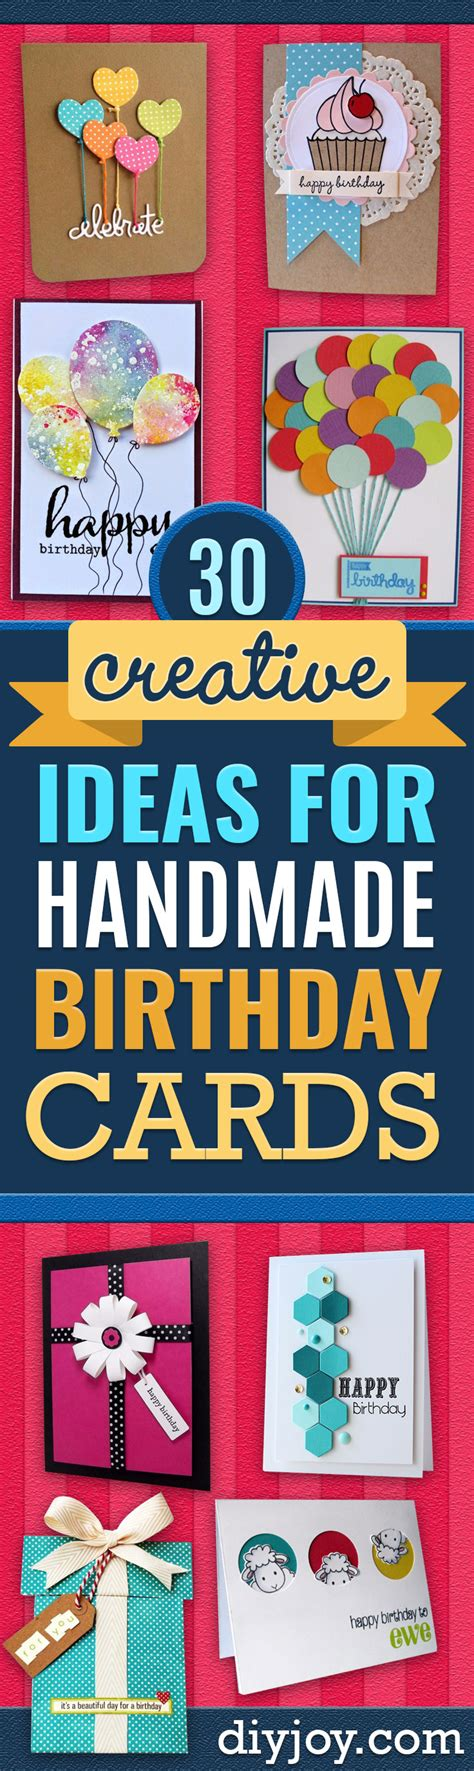 Creative Ideas For Handmade Birthday Cards - birthday card ideas free photo cards